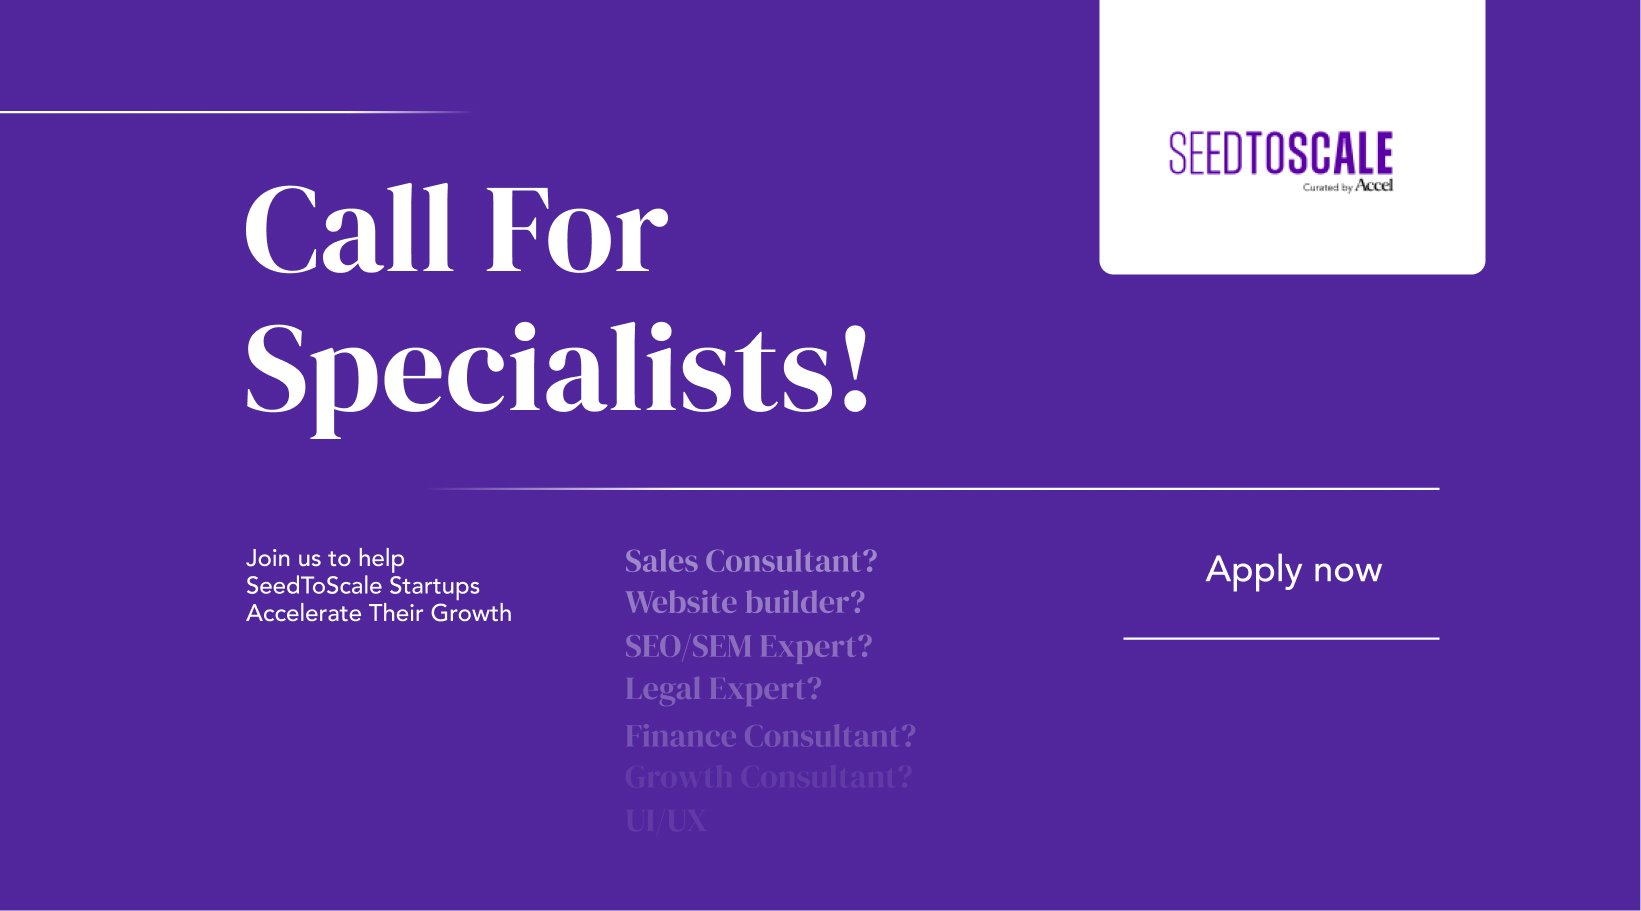 Call For Specialists: Join us to help SeedToScale Startups Accelerate Their Growth